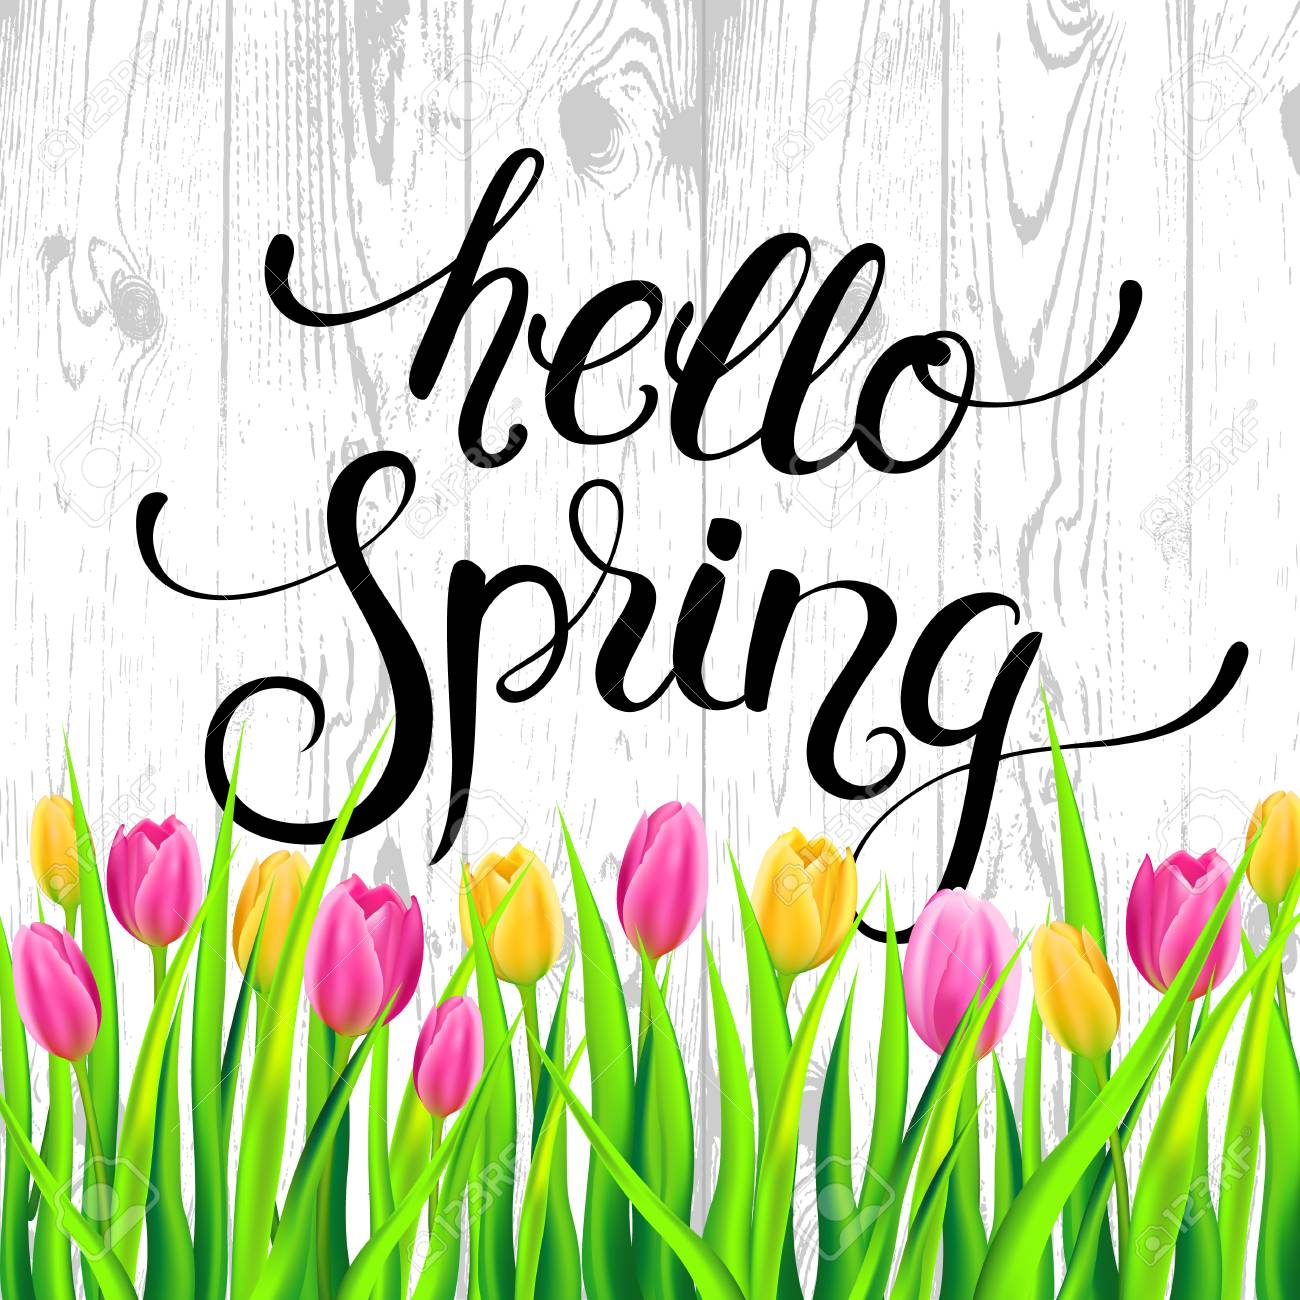 Hello Spring Card With Handwritten Calligraphy Lettering And Tulips On Wood  Texture Background. Vector Illustration